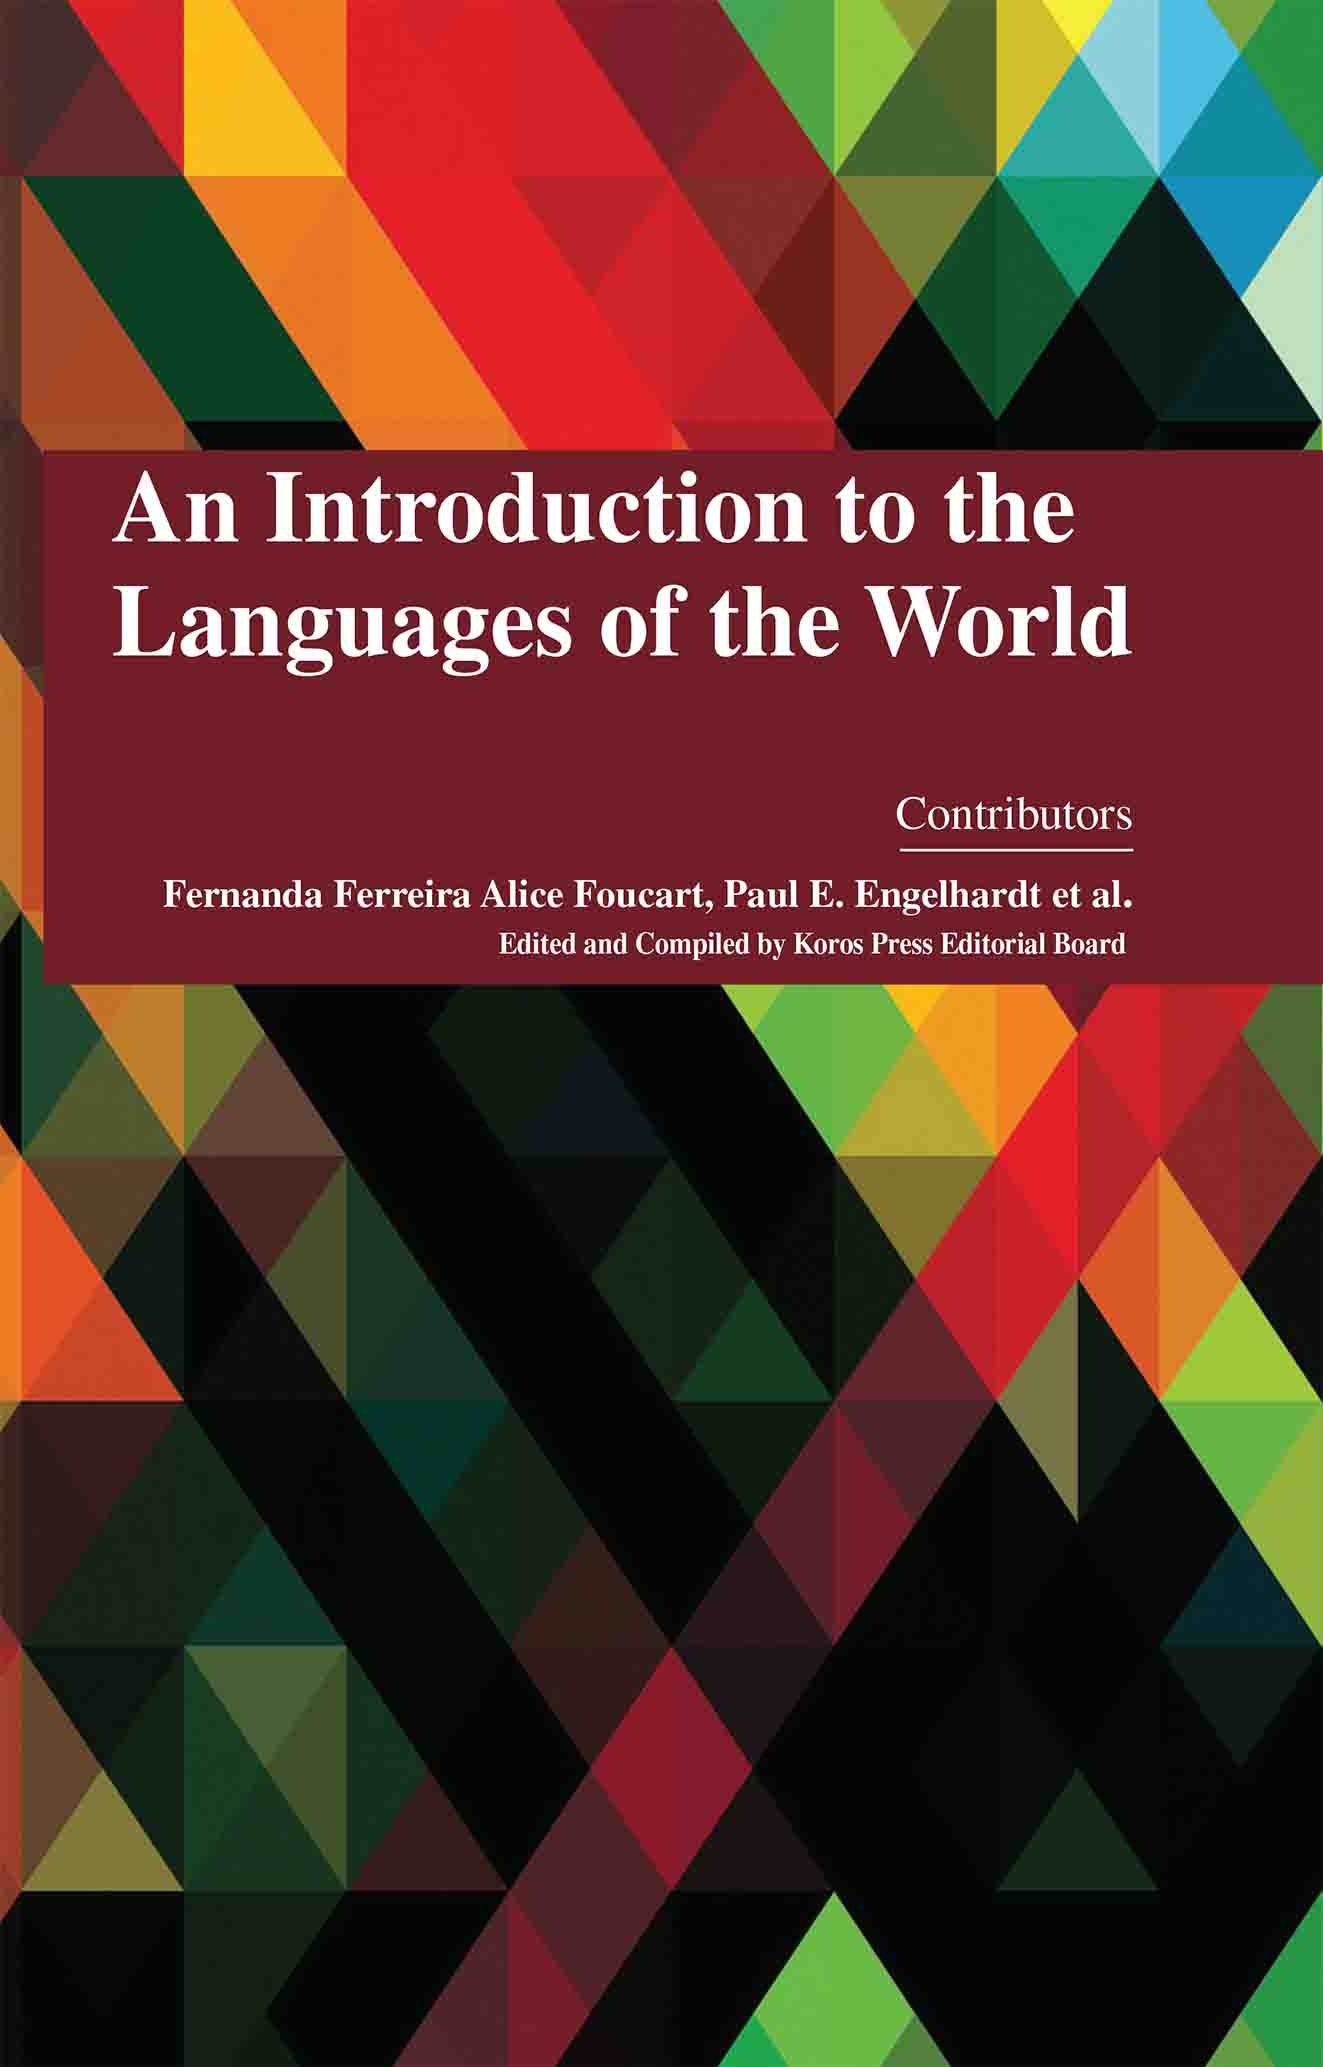 An Introduction to the Languages of the World PDF